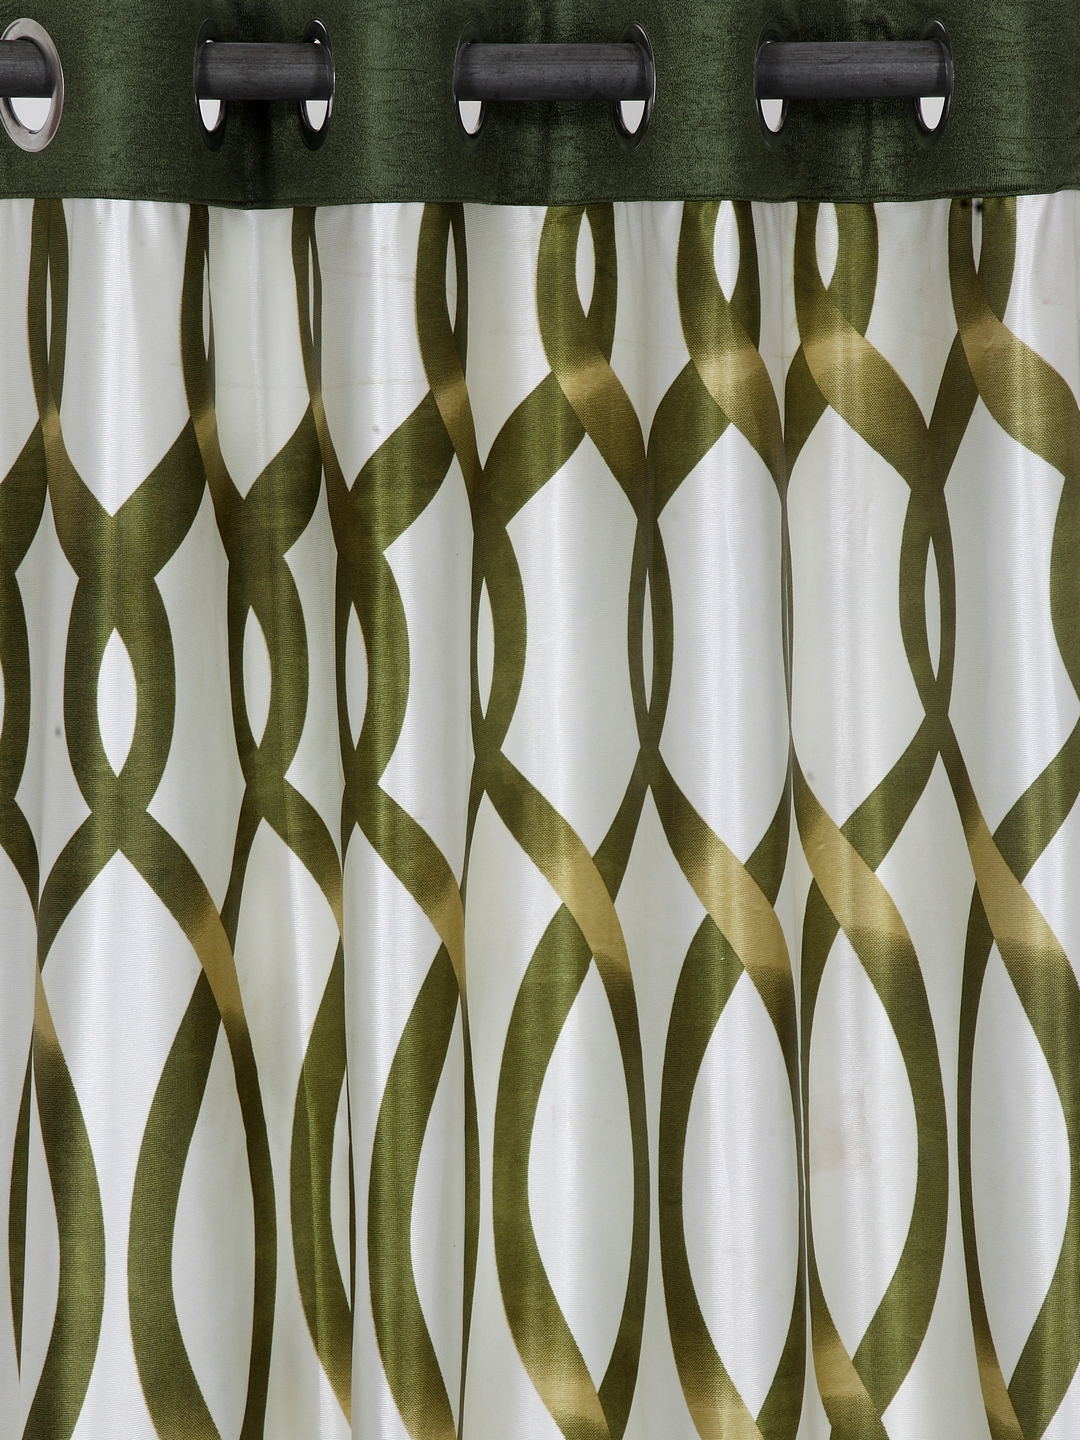 Polyester Printed Window Curtains for Bedroom, Kitchen, Kids or Living Room-012_Set of 2 - 1, Large